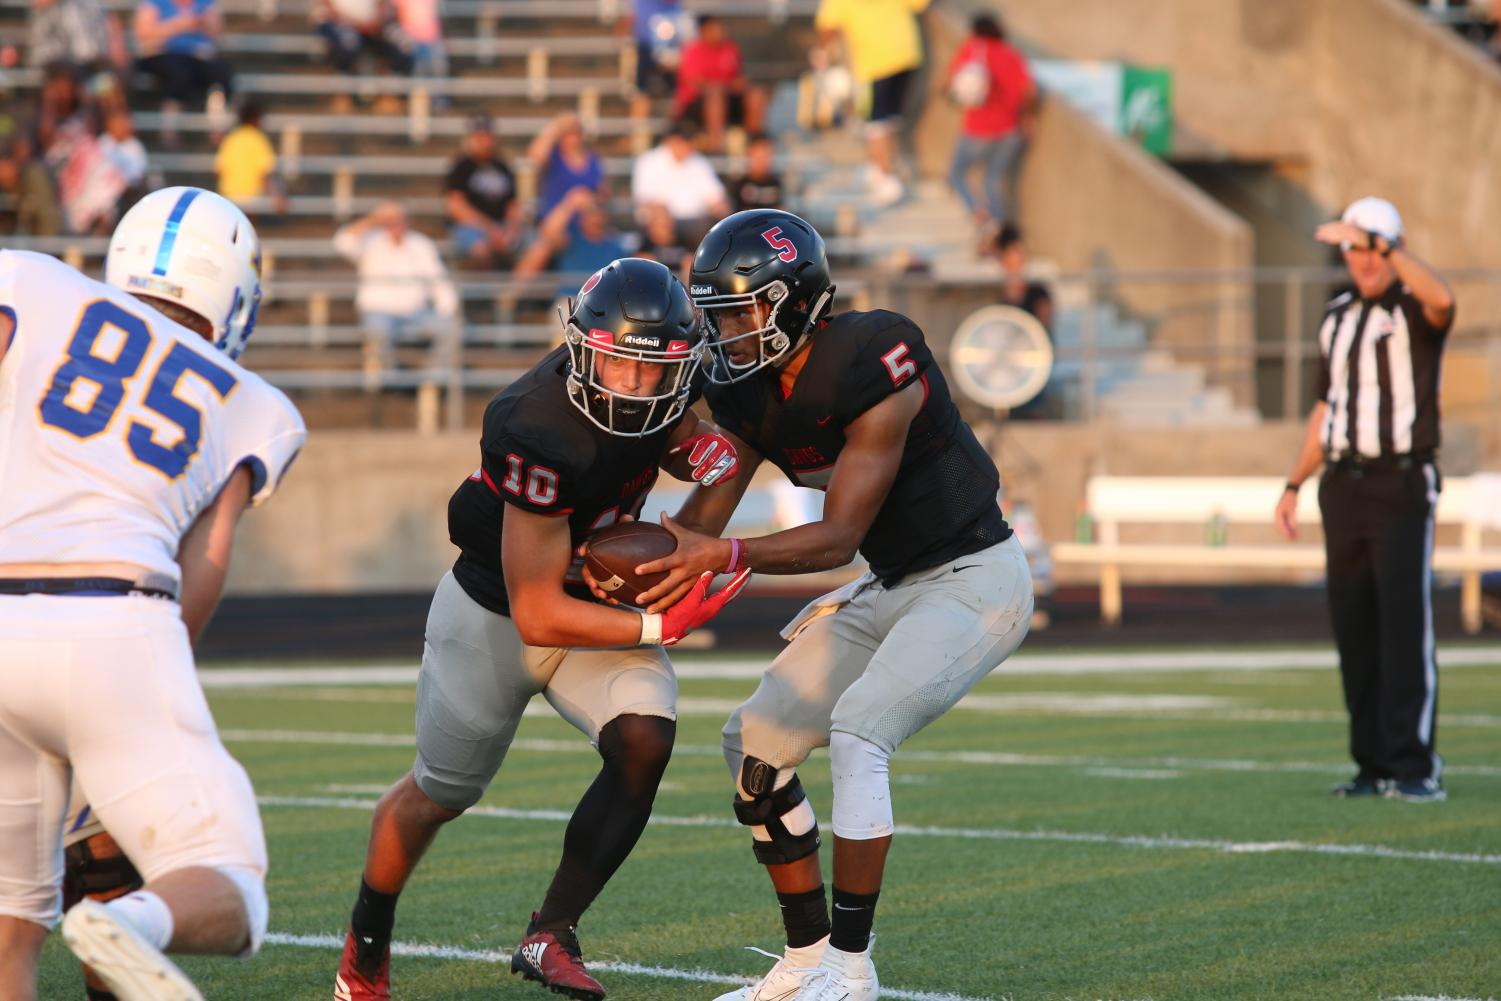 HAND OFF: Quarterback Trinidad Sanders, senior, hands the ball off to senior running back Justin Poole.